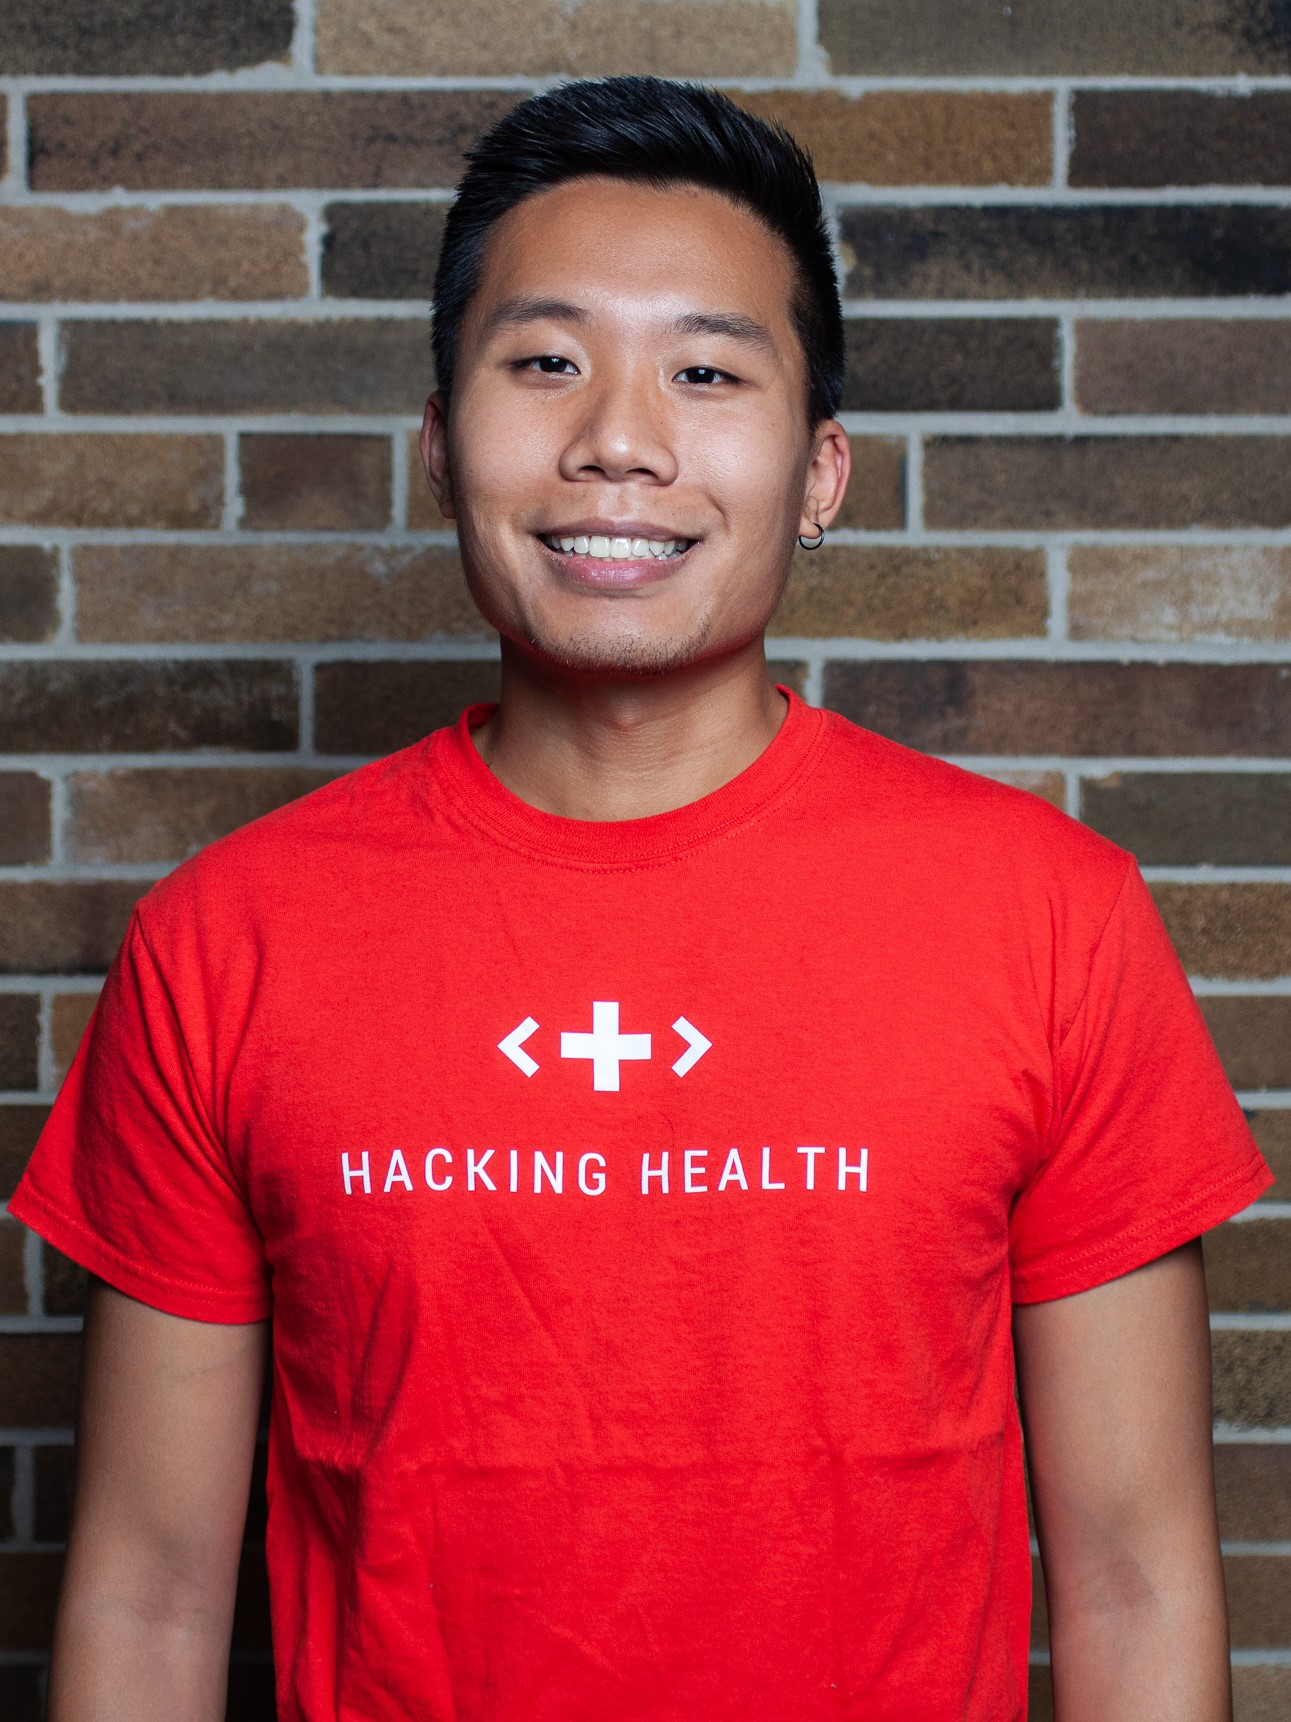 Hacking Health Toronto - Andy Tran